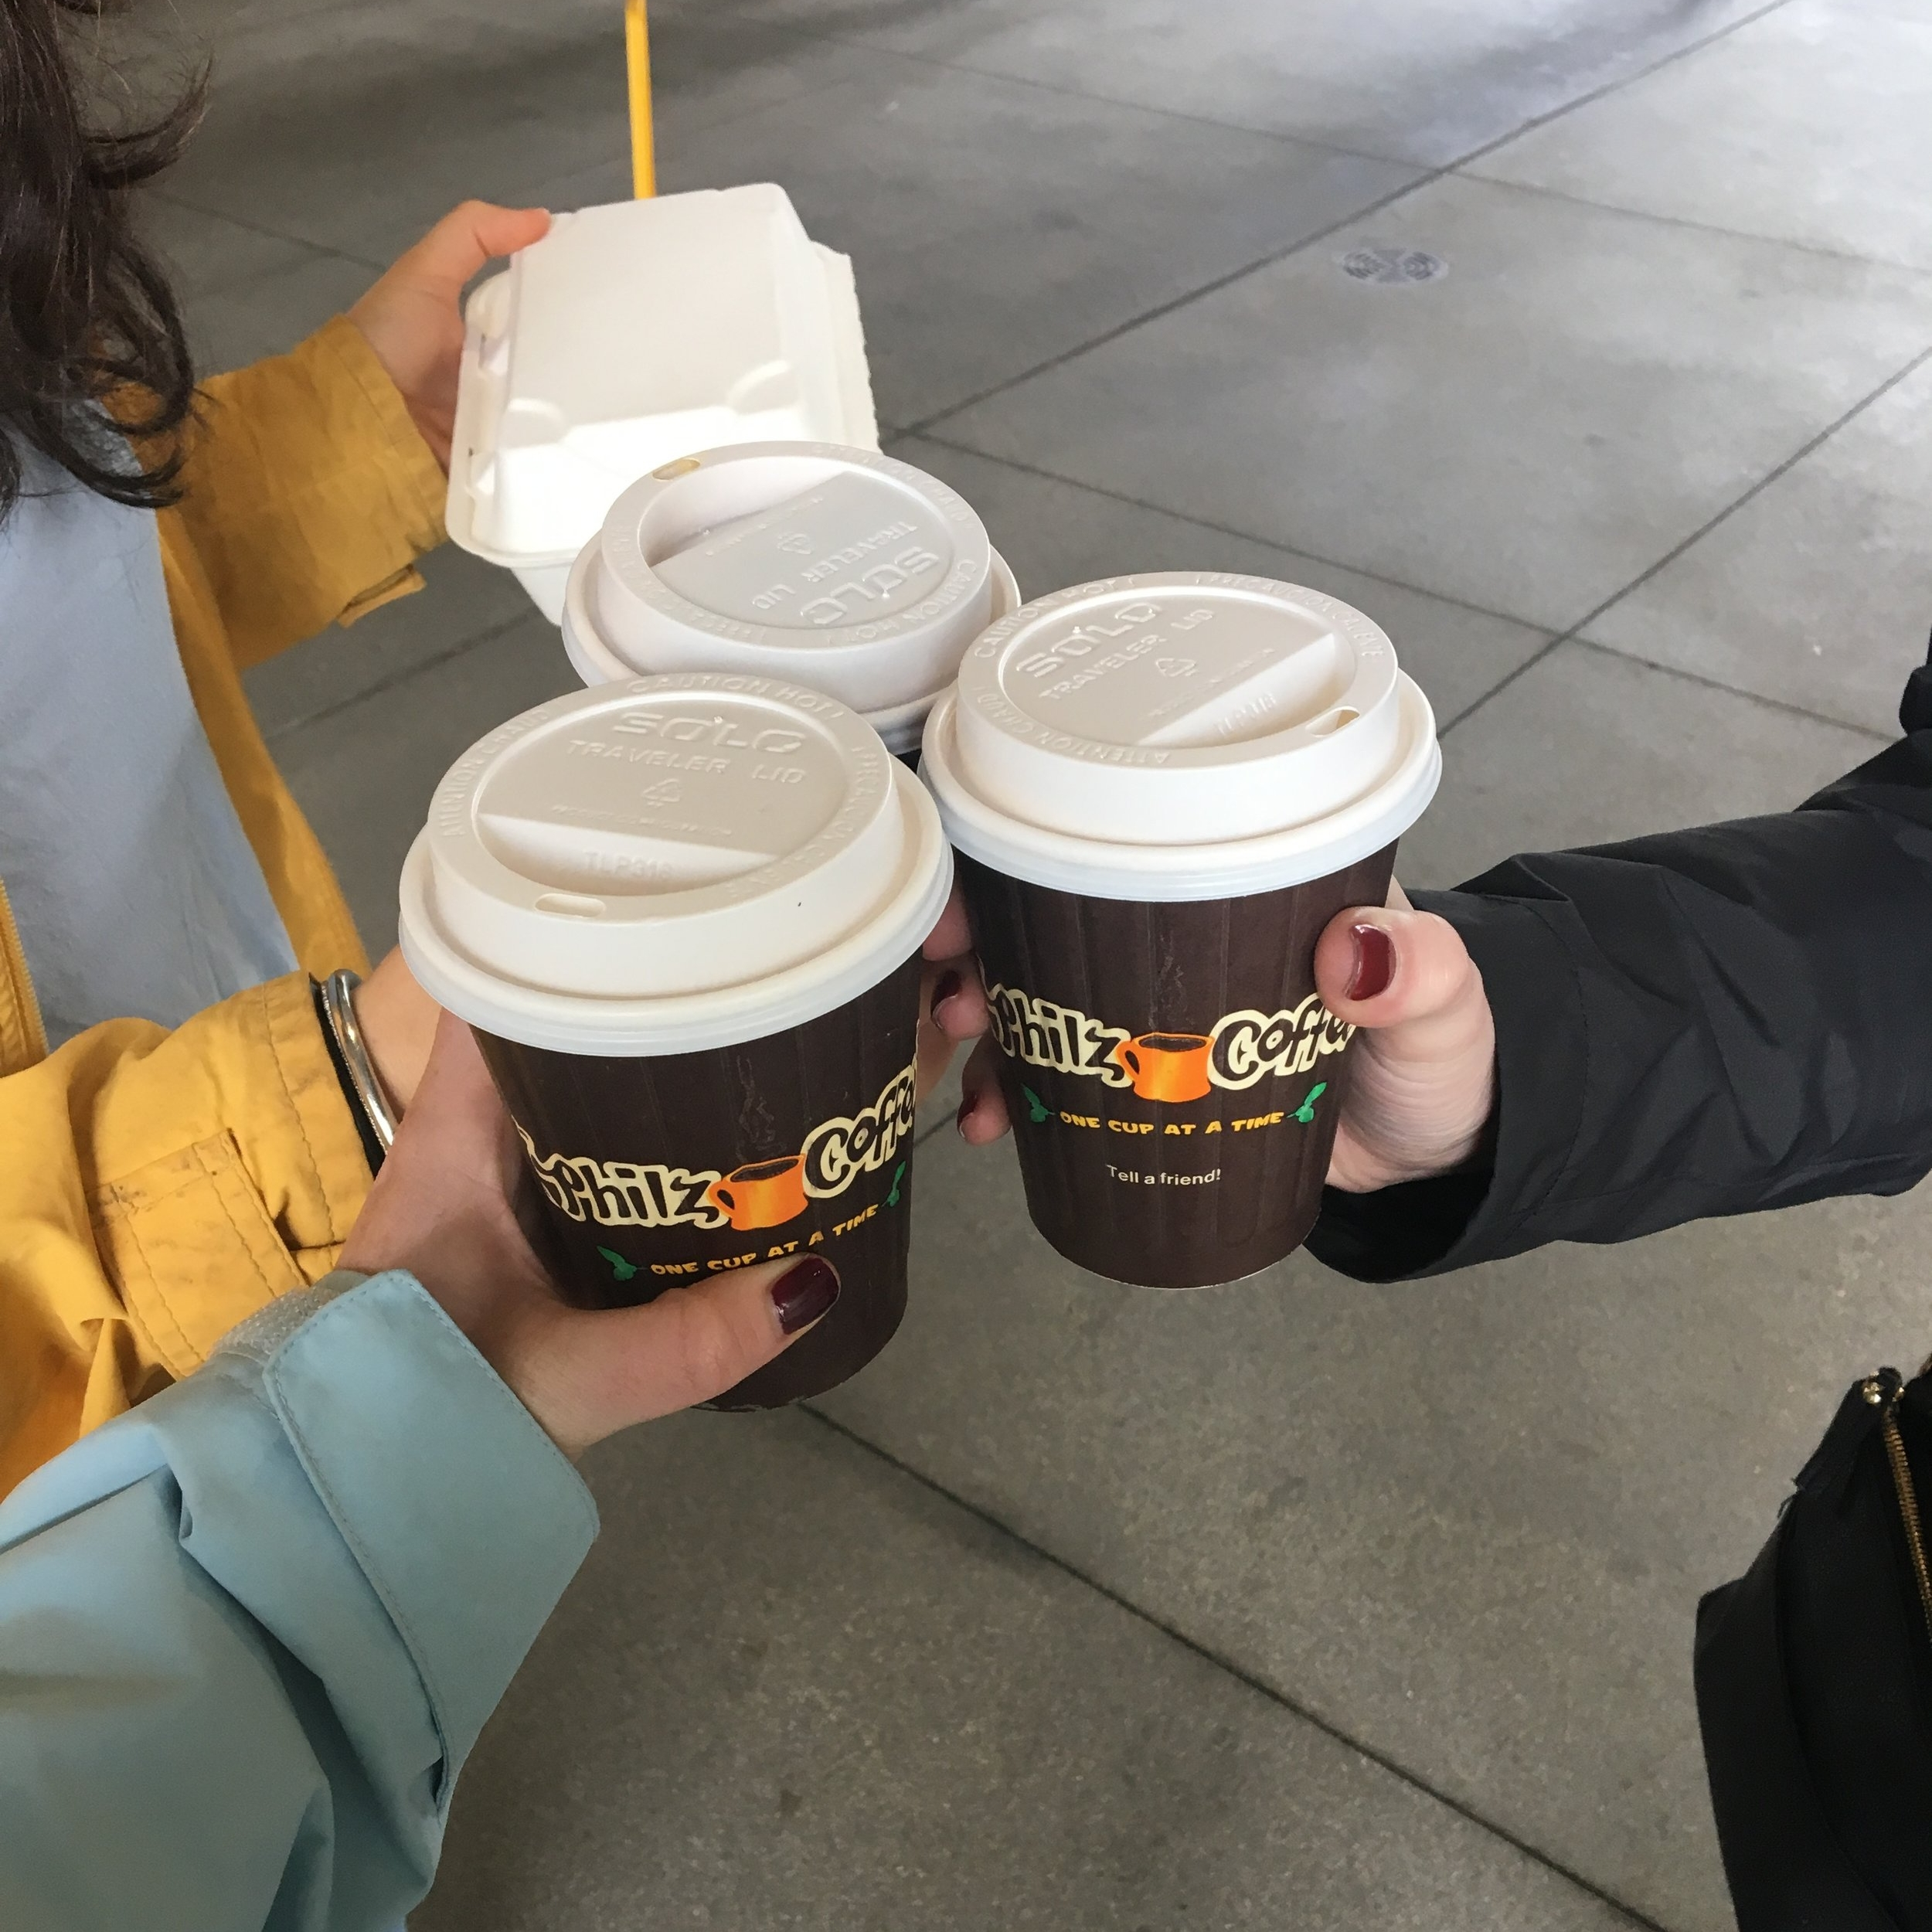 You better believe we started every day with a coffee cheers